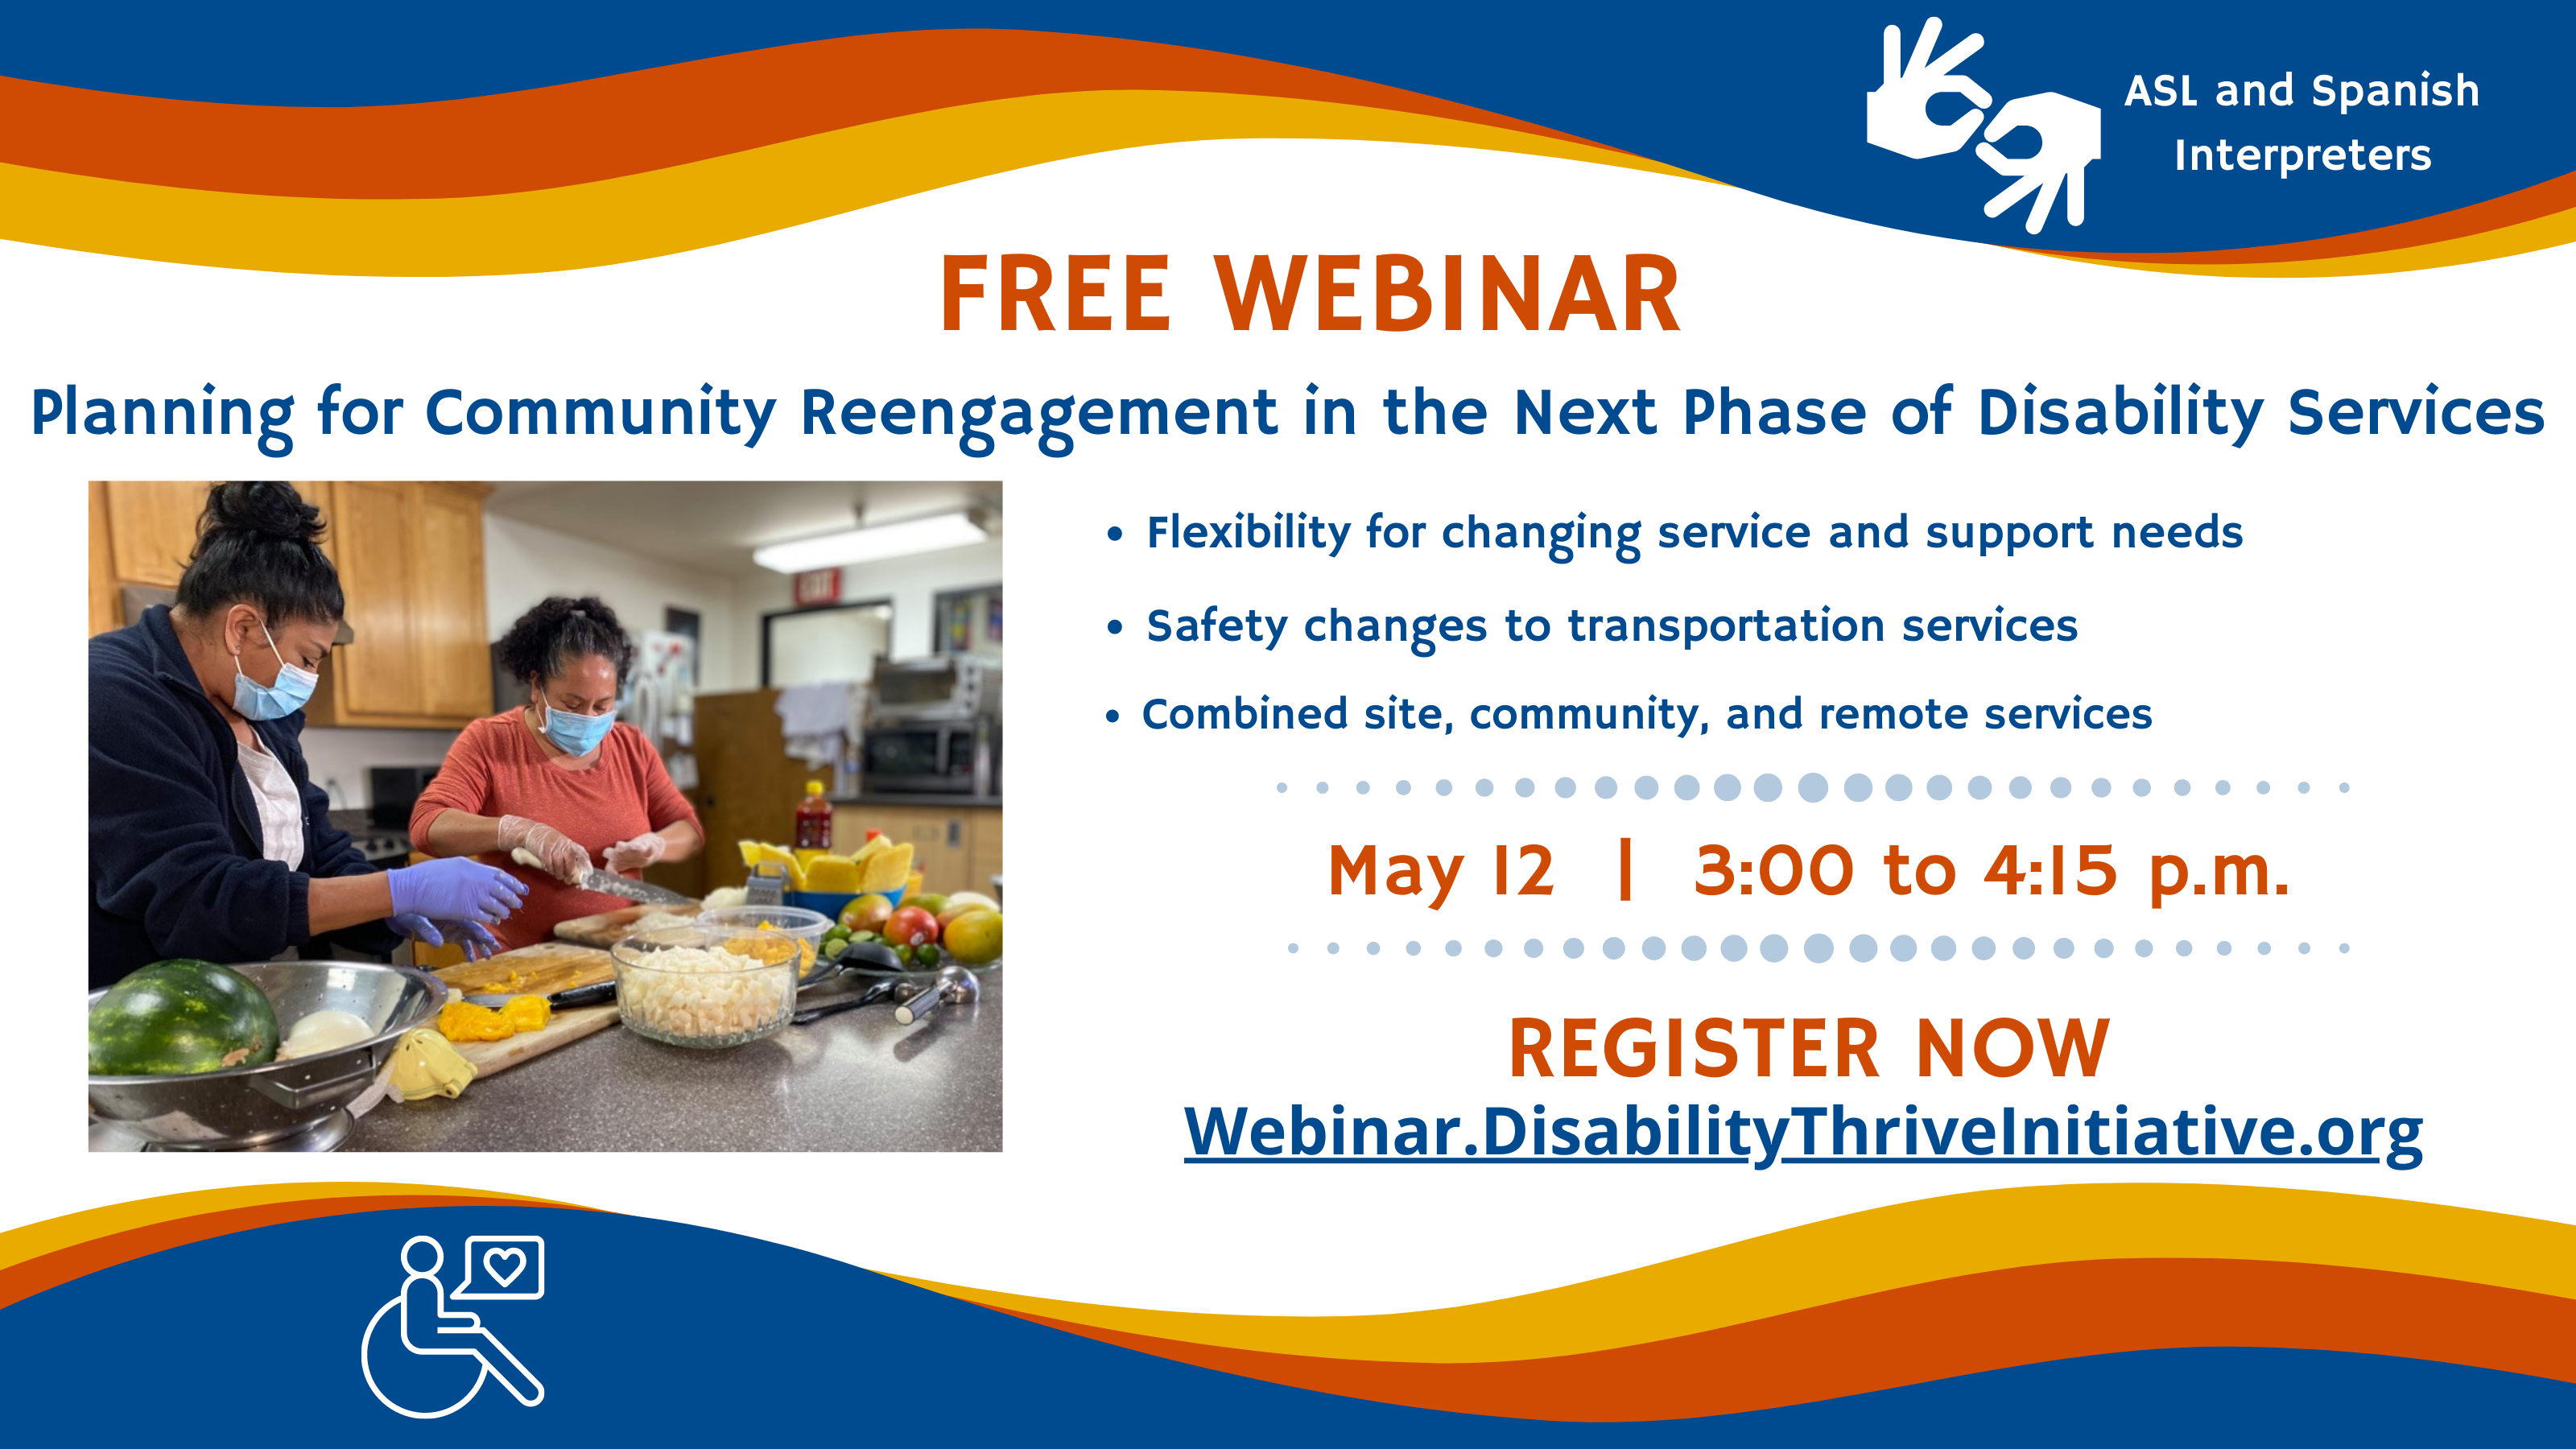 Free webinar Planning for Community Reengagement in the Next Phase of Disability Services Including the following topics: Flexibility for changing service and support needs Safety changes to transportation services Combined site, community, and remote services On May 12 from 3:00 to 4:15 p.m. ASL and Spanish Interpreters available Register now at webinar.disabilitythriveinitiative.org Image of a woman teaching another woman how to cook in a day program